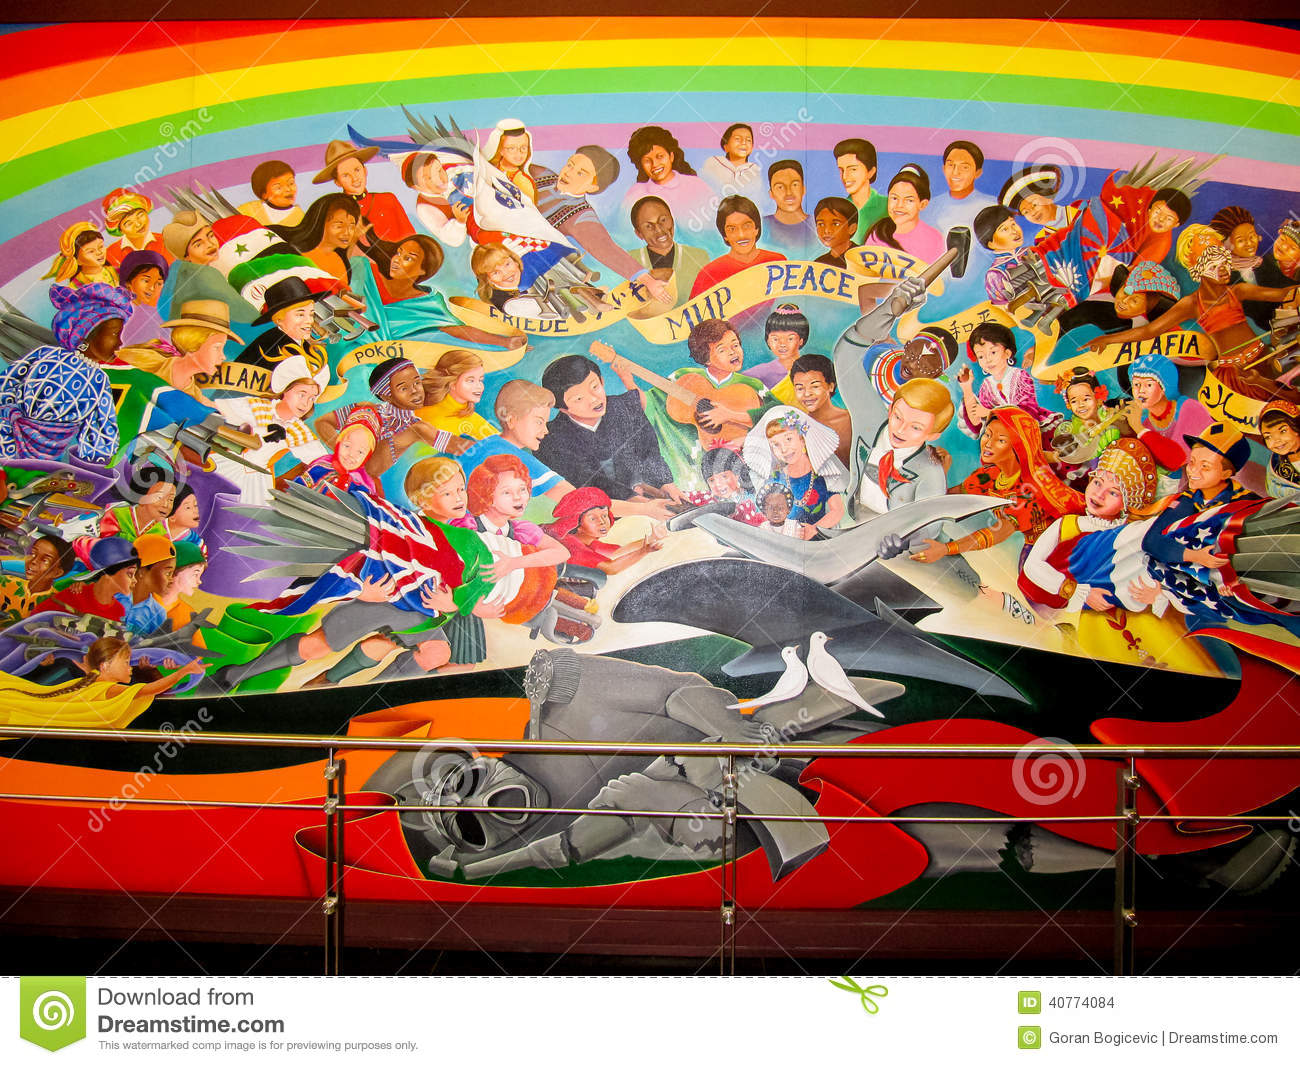 Children of the world dream of peace editorial stock image for Dia mural artist